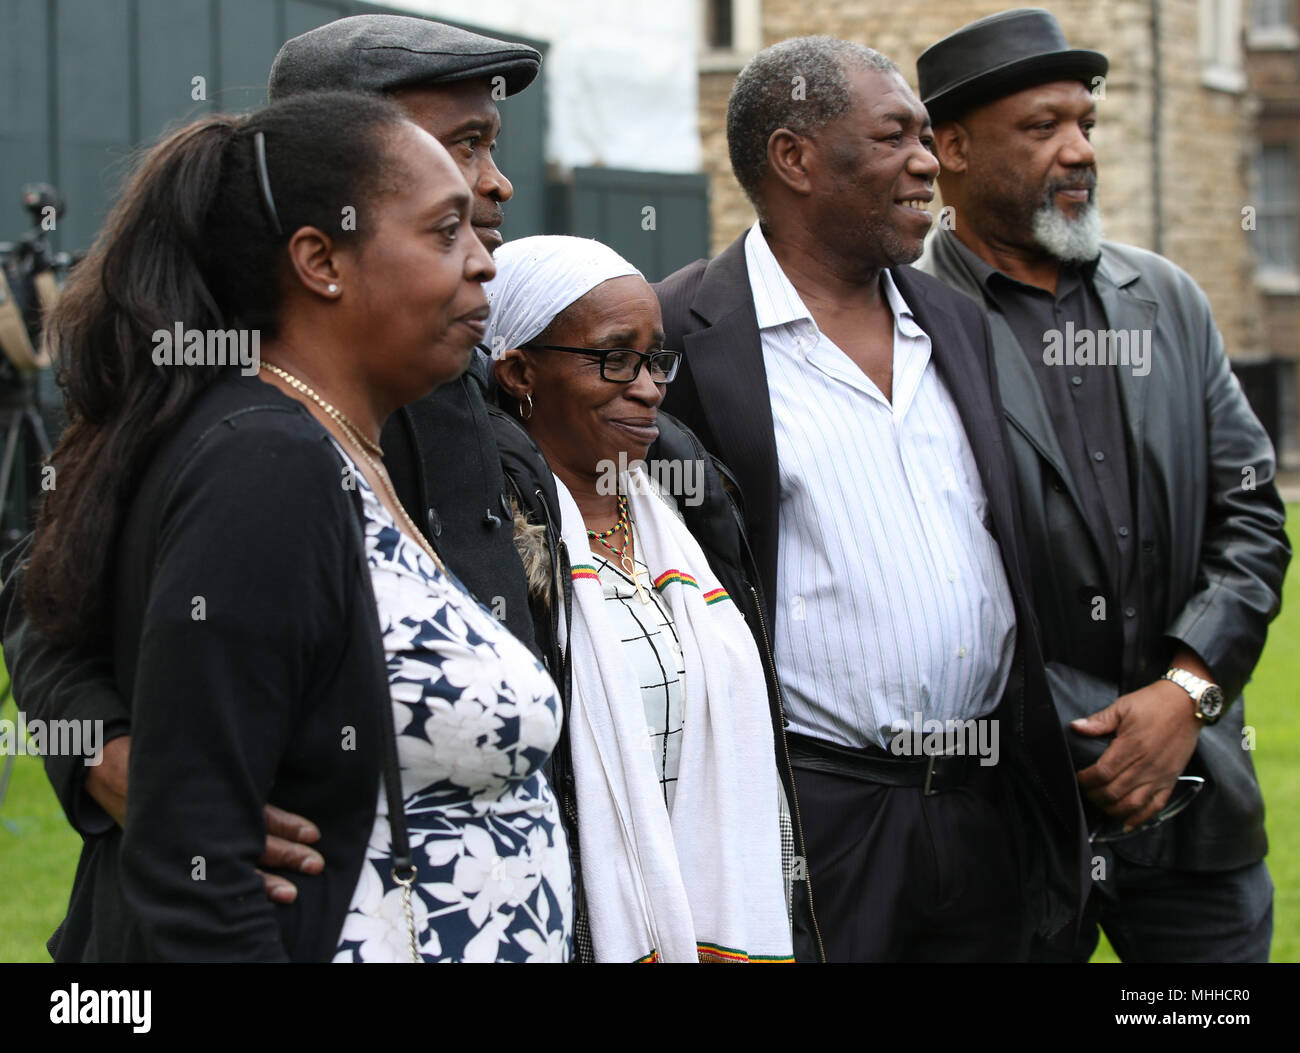 Members of the Windrush generation (left to right) Sarah O'Connor, 56, who arrived from Jamaica in 1967; Anthony Bryan, aged 60, who arrived from Jamaica in 1965; Paulette Wilson, 62, who arrived from Jamaica in 1968; Sylvester Marshall, 63, who arrived from Jamaica in 1973, and Elwaldo Romeo, 63, who arrived from Antigua in 1959, during a photocall in Westminster, London. - Stock Image